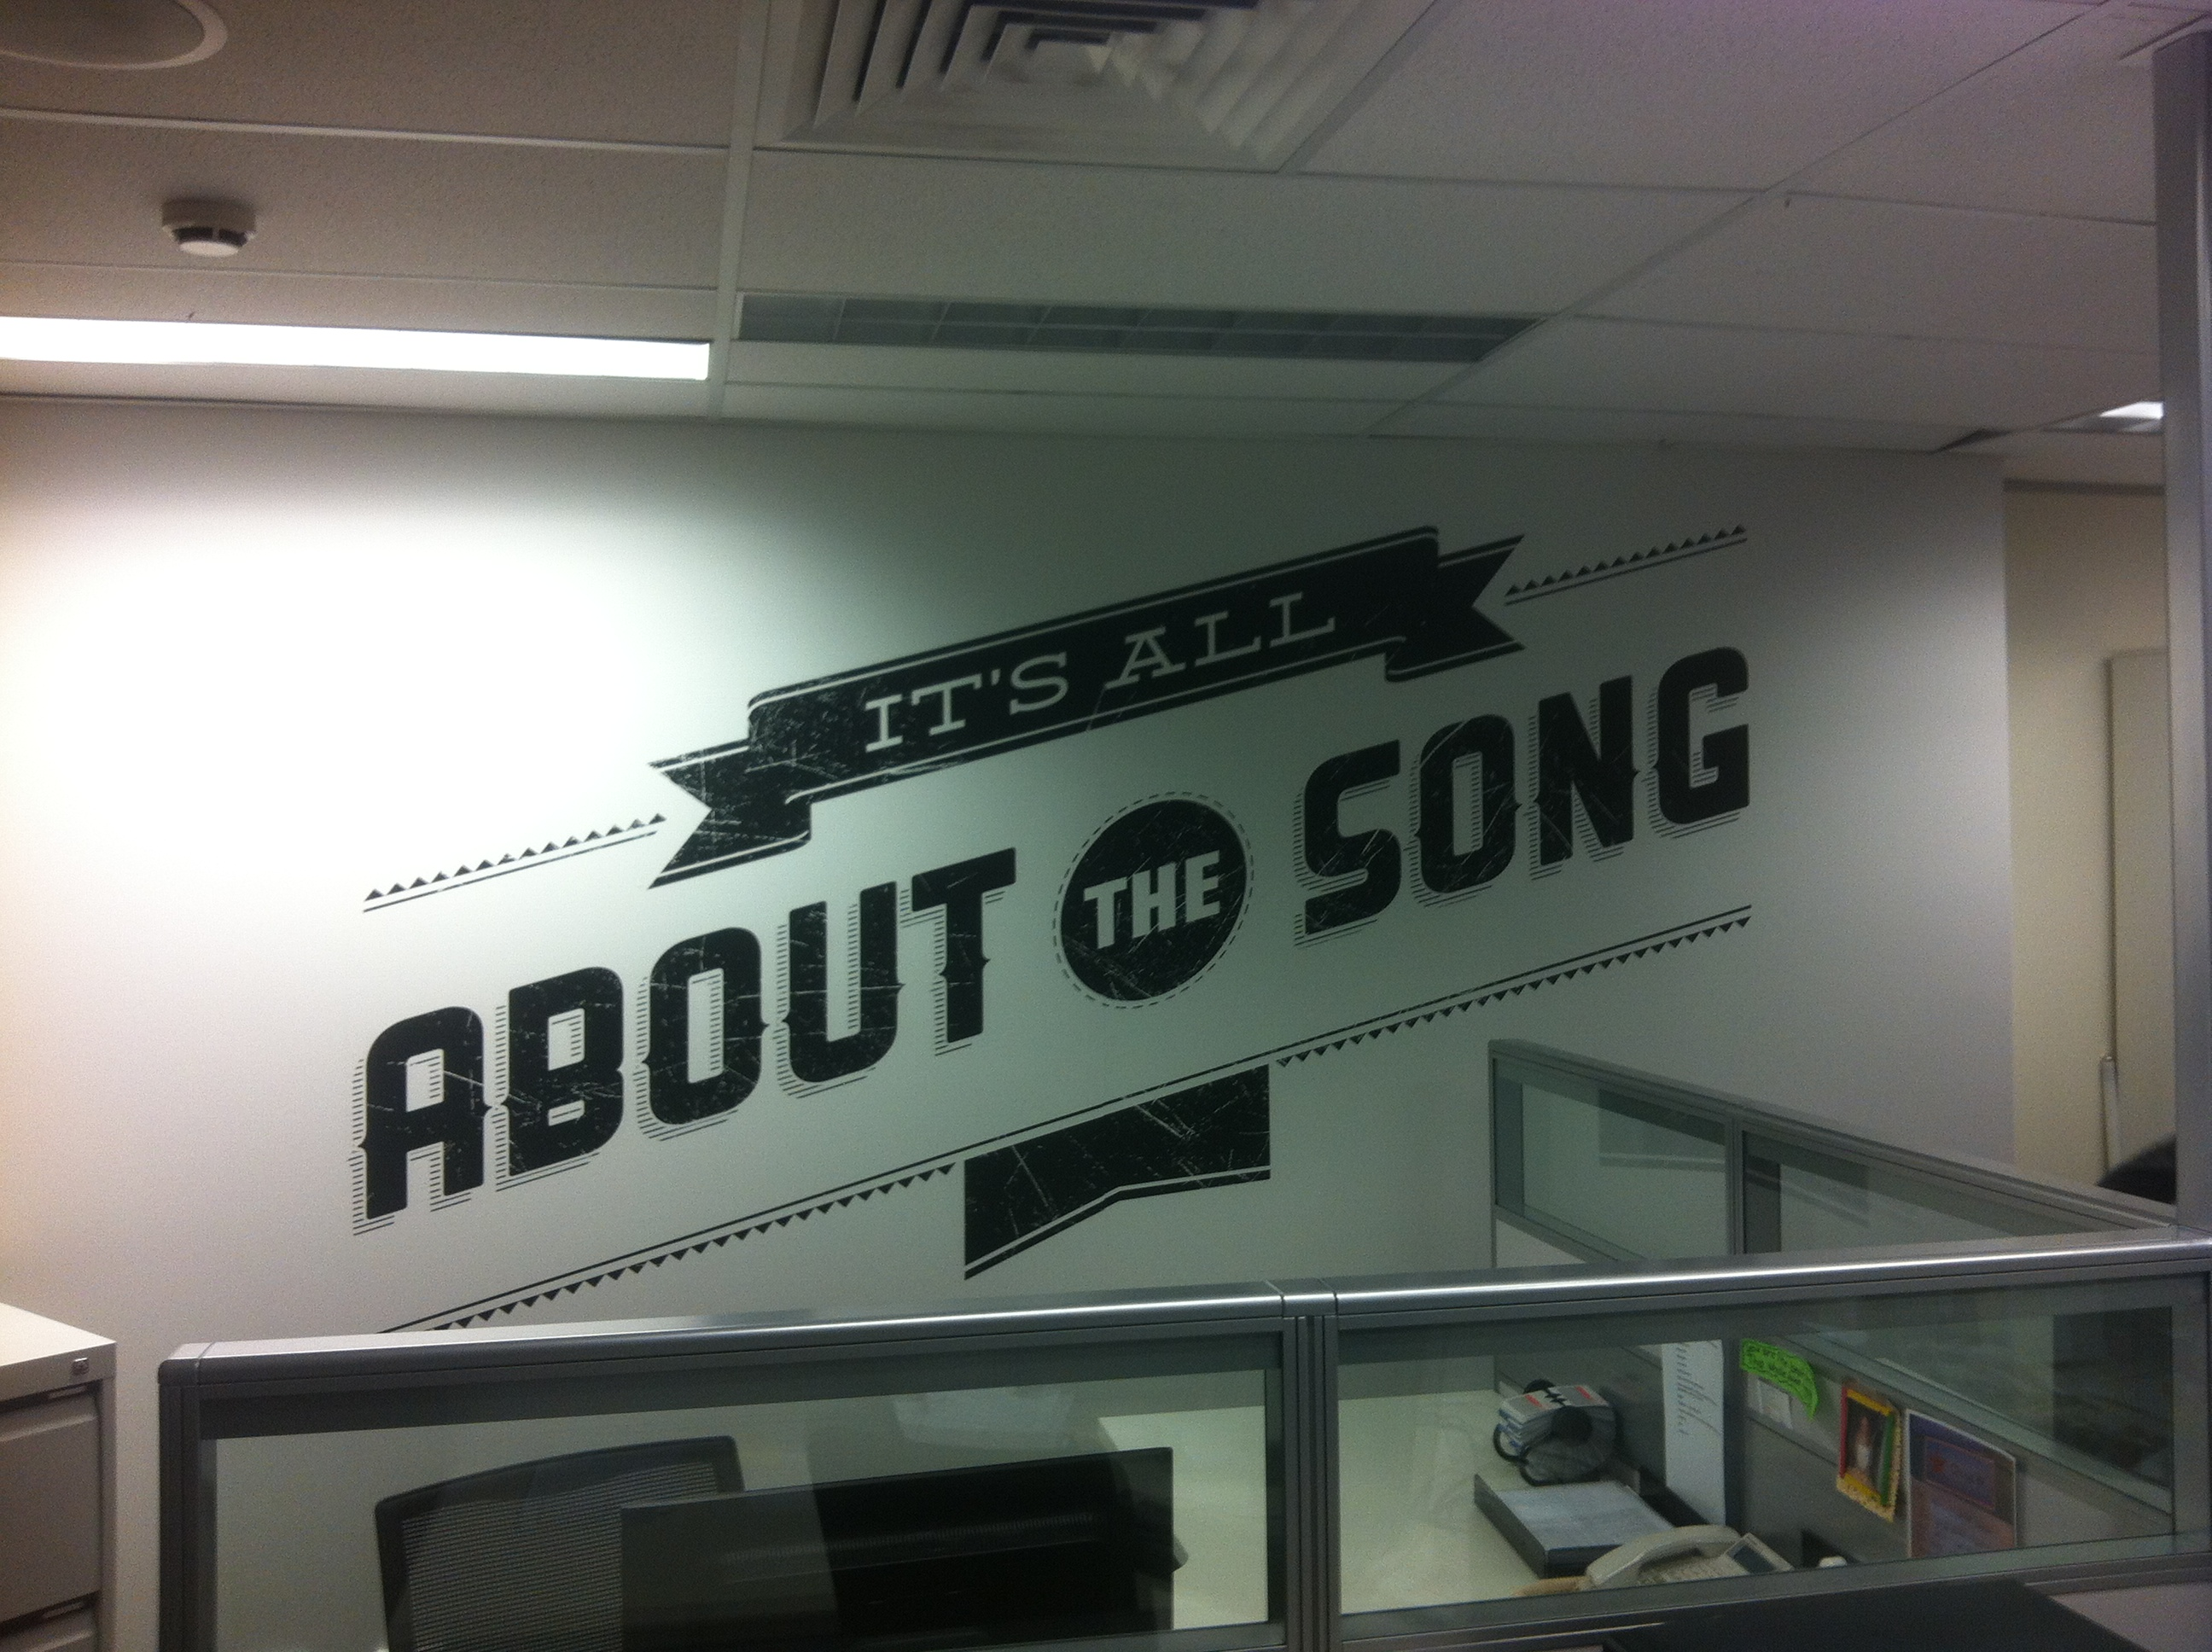 Jmac Graphics, Signage, Indoor, Office, Wall Graphics, Installation, About the Song